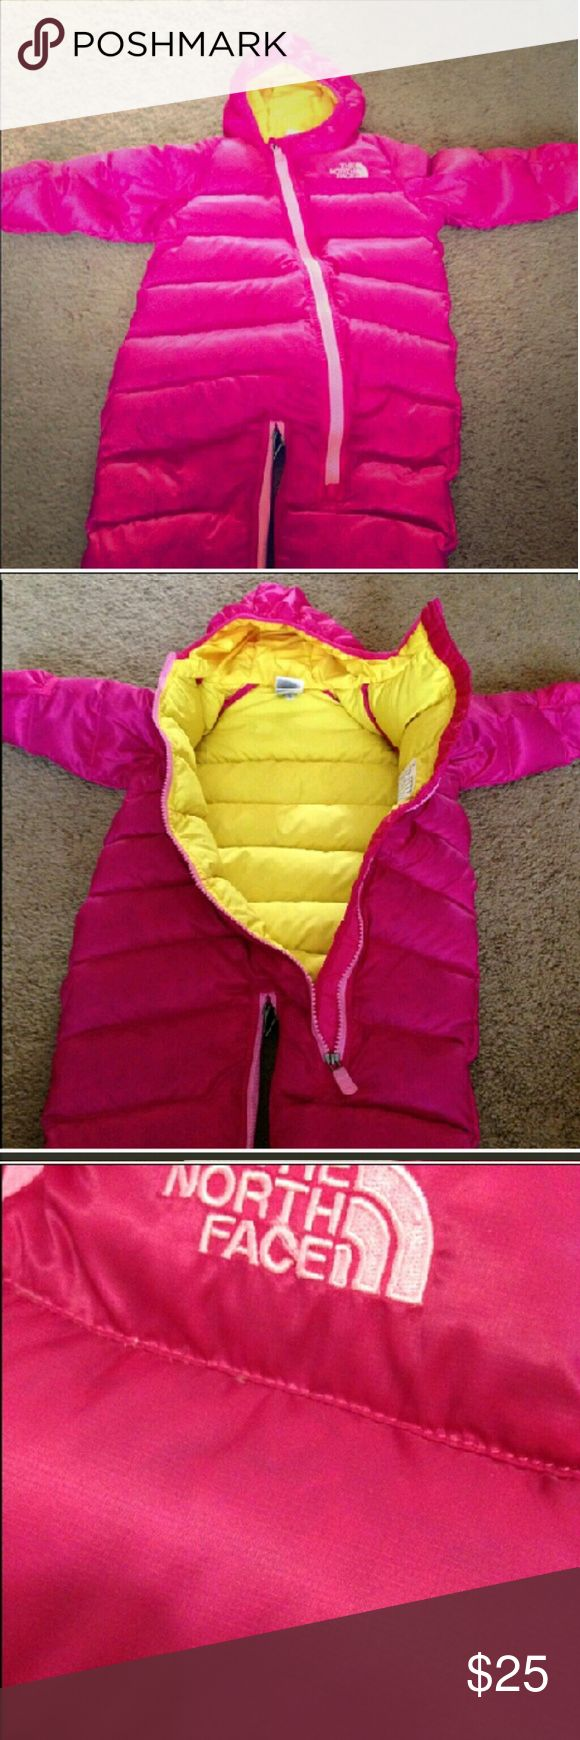 Infant snow suit Pink/yellow. Has some bluish spots in the pink coloring but was purchased this way. In good condition. Size 6-12 mos North Face Jackets & Coats